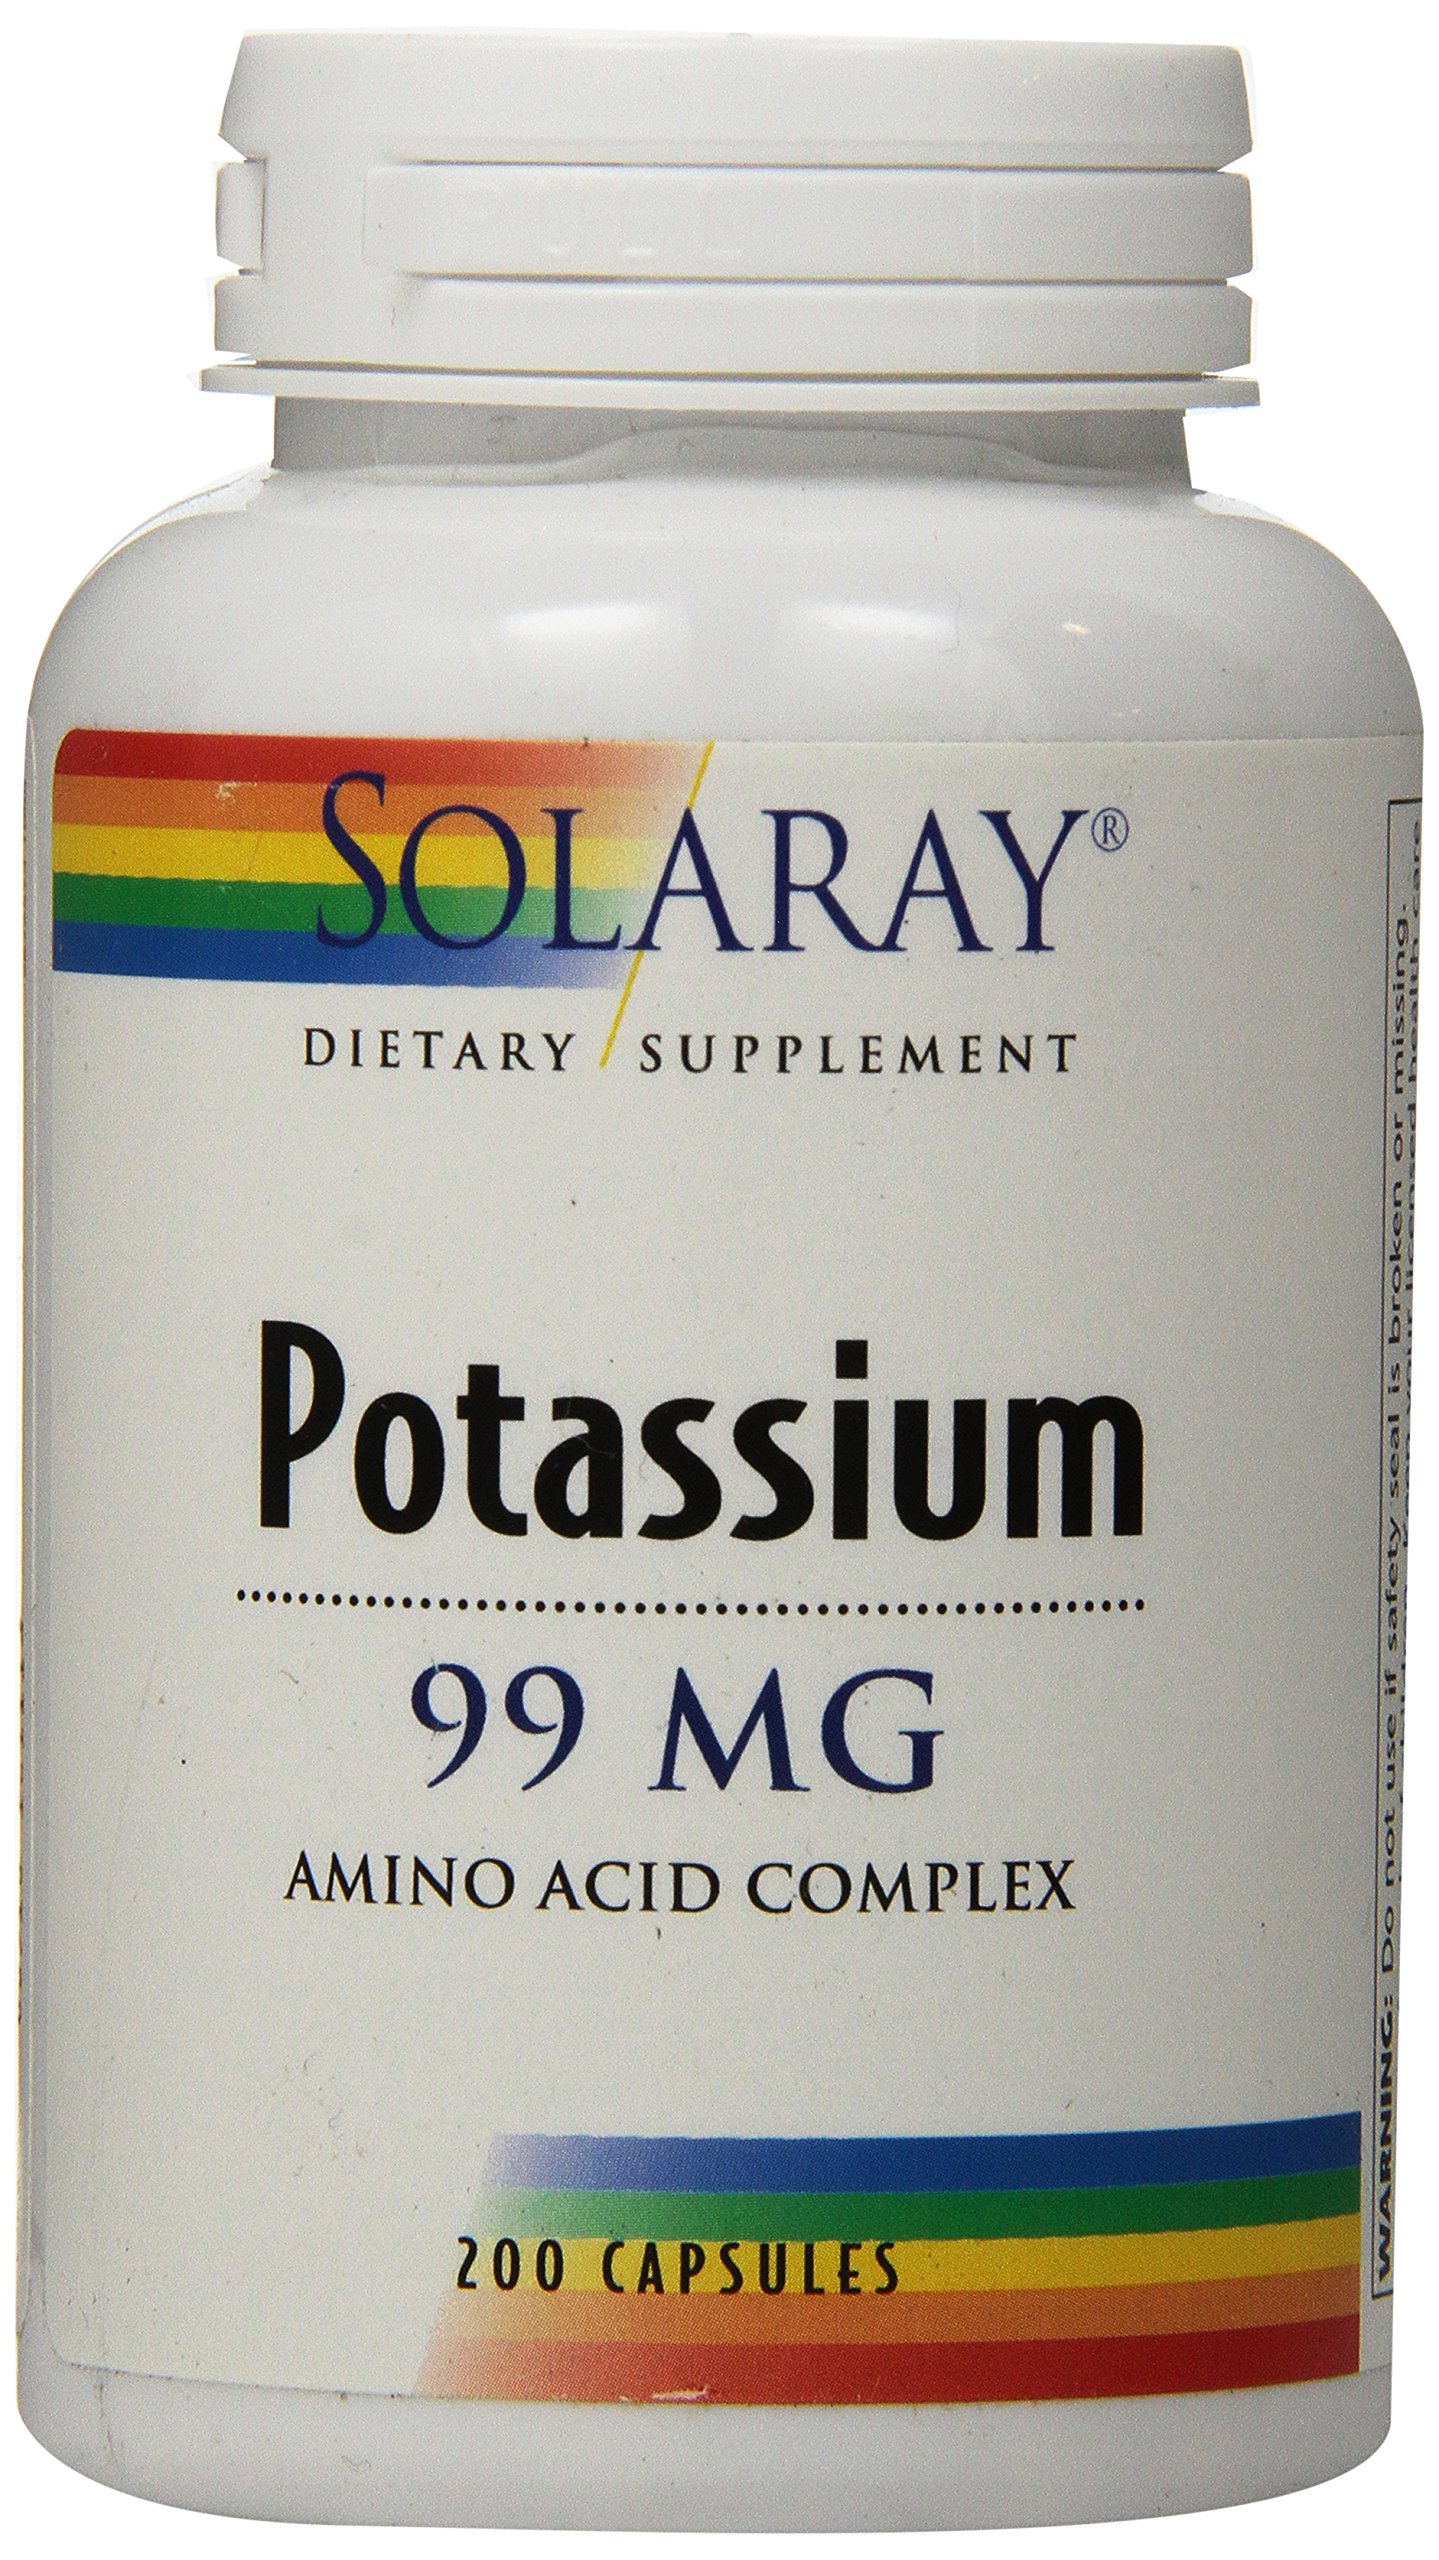 Solaray Potassium Supplement, 99 mg, 200 Count